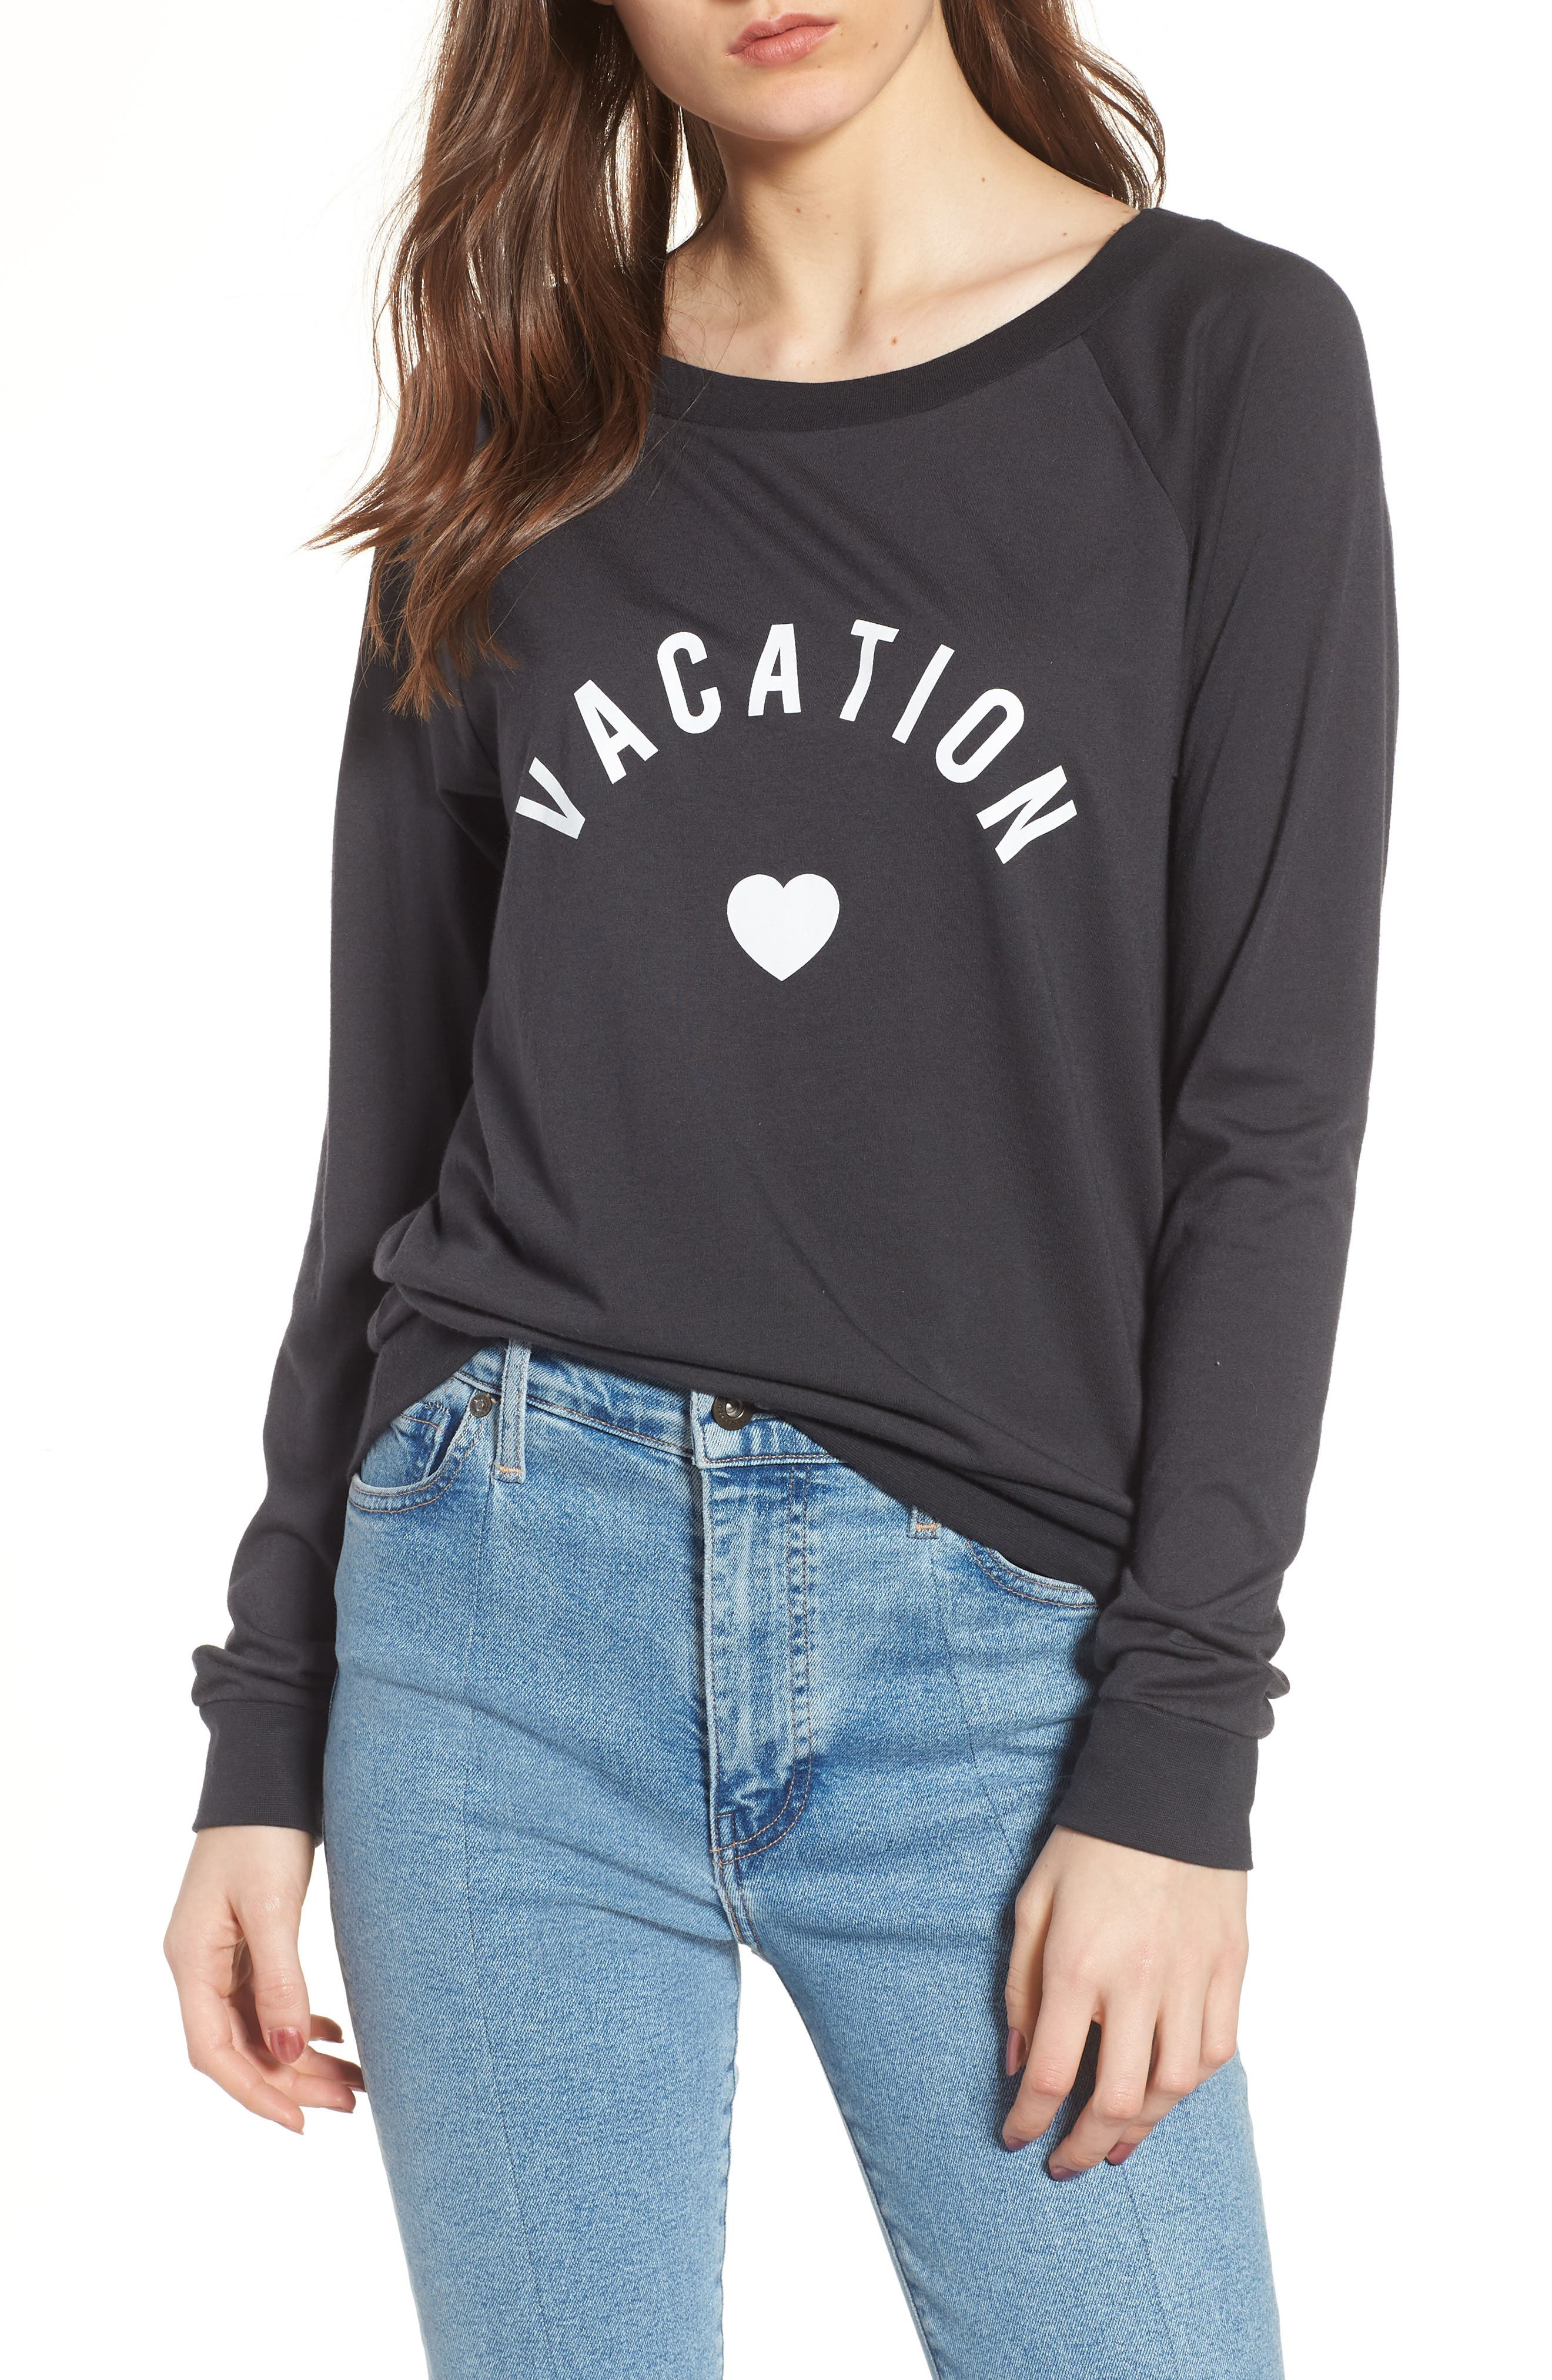 Candy - Vacation Pullover,                             Main thumbnail 1, color,                             BLACK